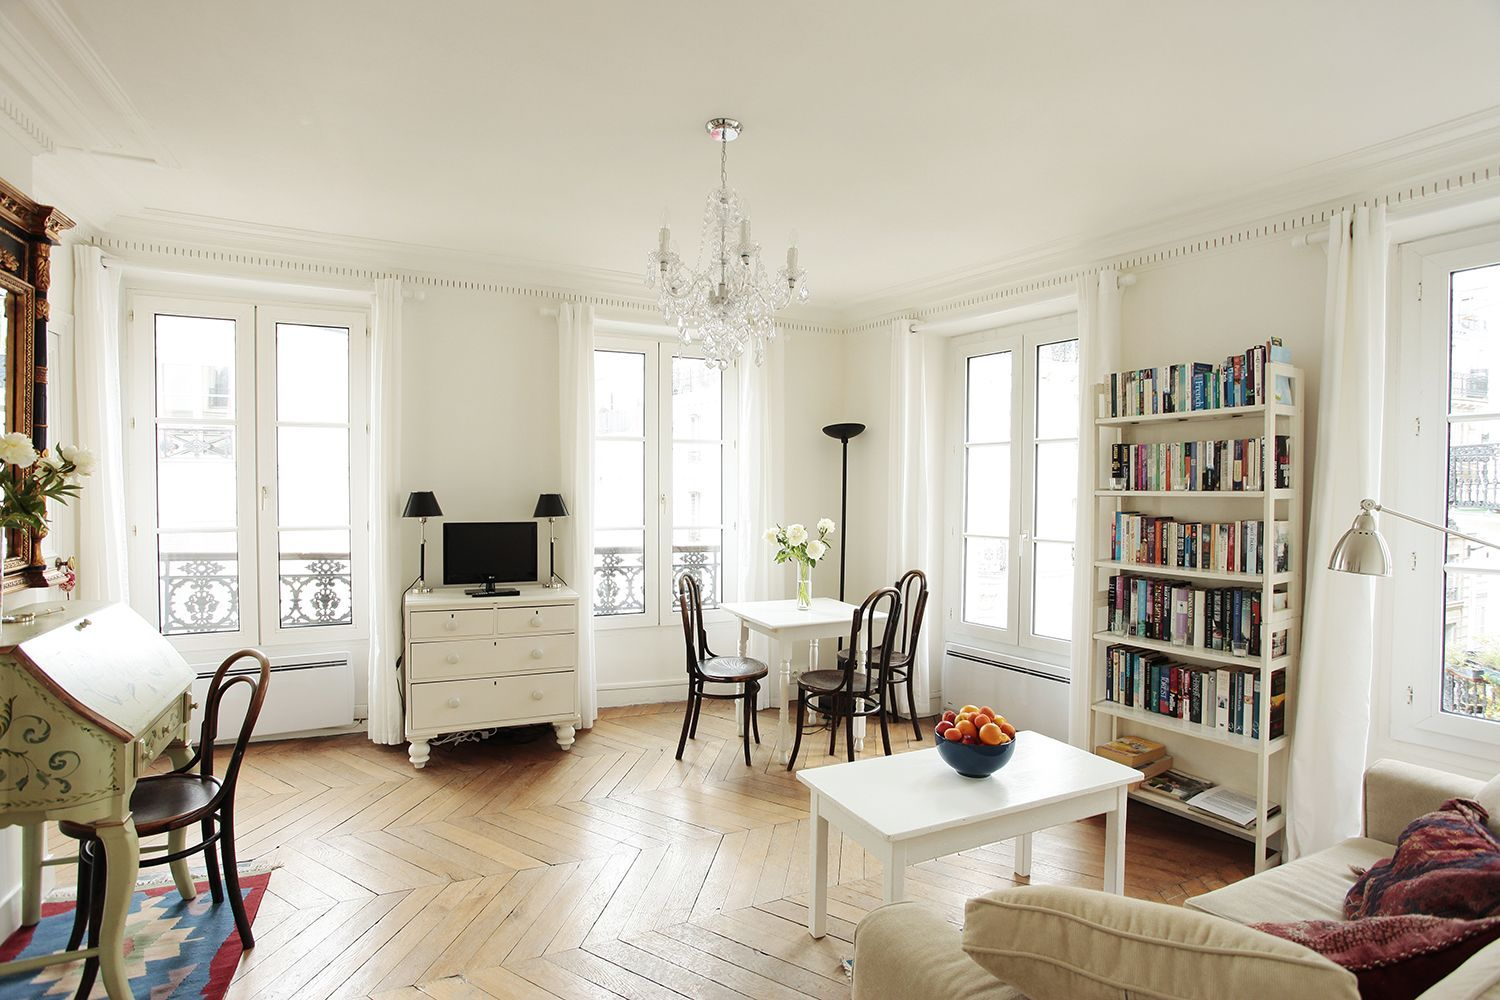 Perfectly paris vacation apartments one bedroom apartments for Appart hotel 8eme paris